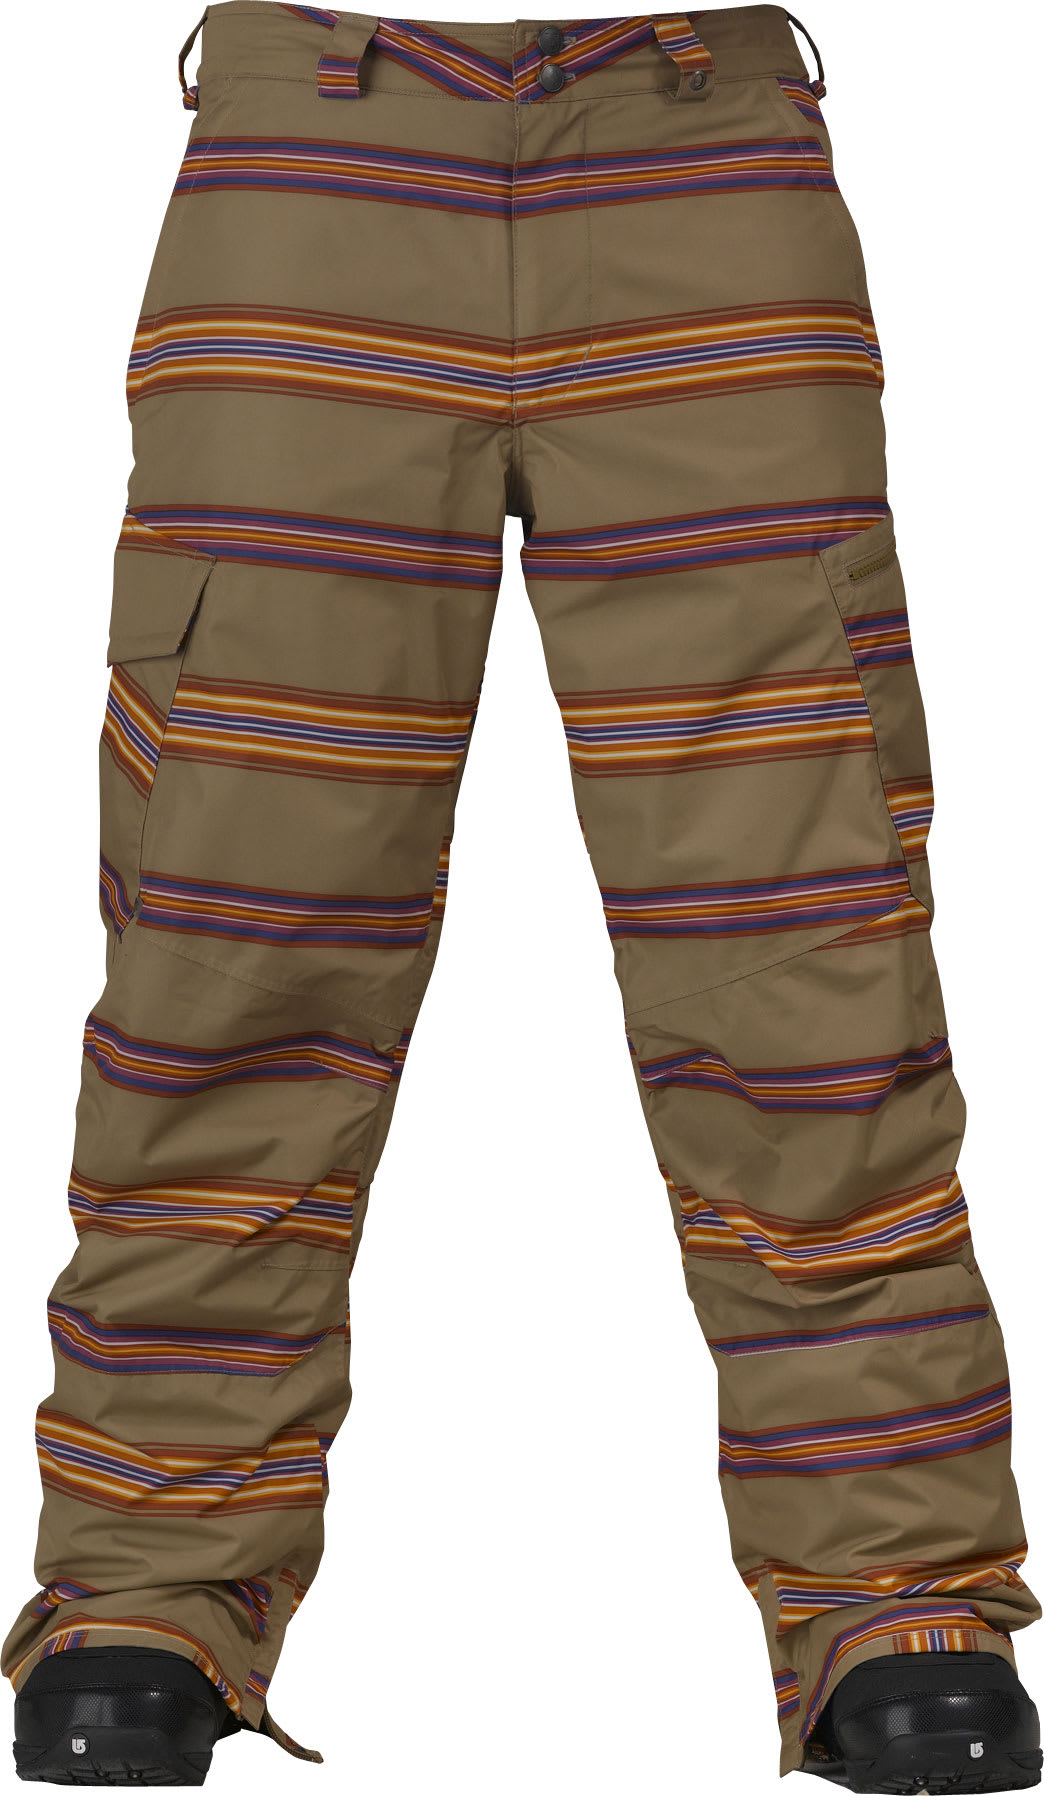 Shop for Burton Cargo Snowboard Pants Cardboard Bandwidth Stripe - Men's